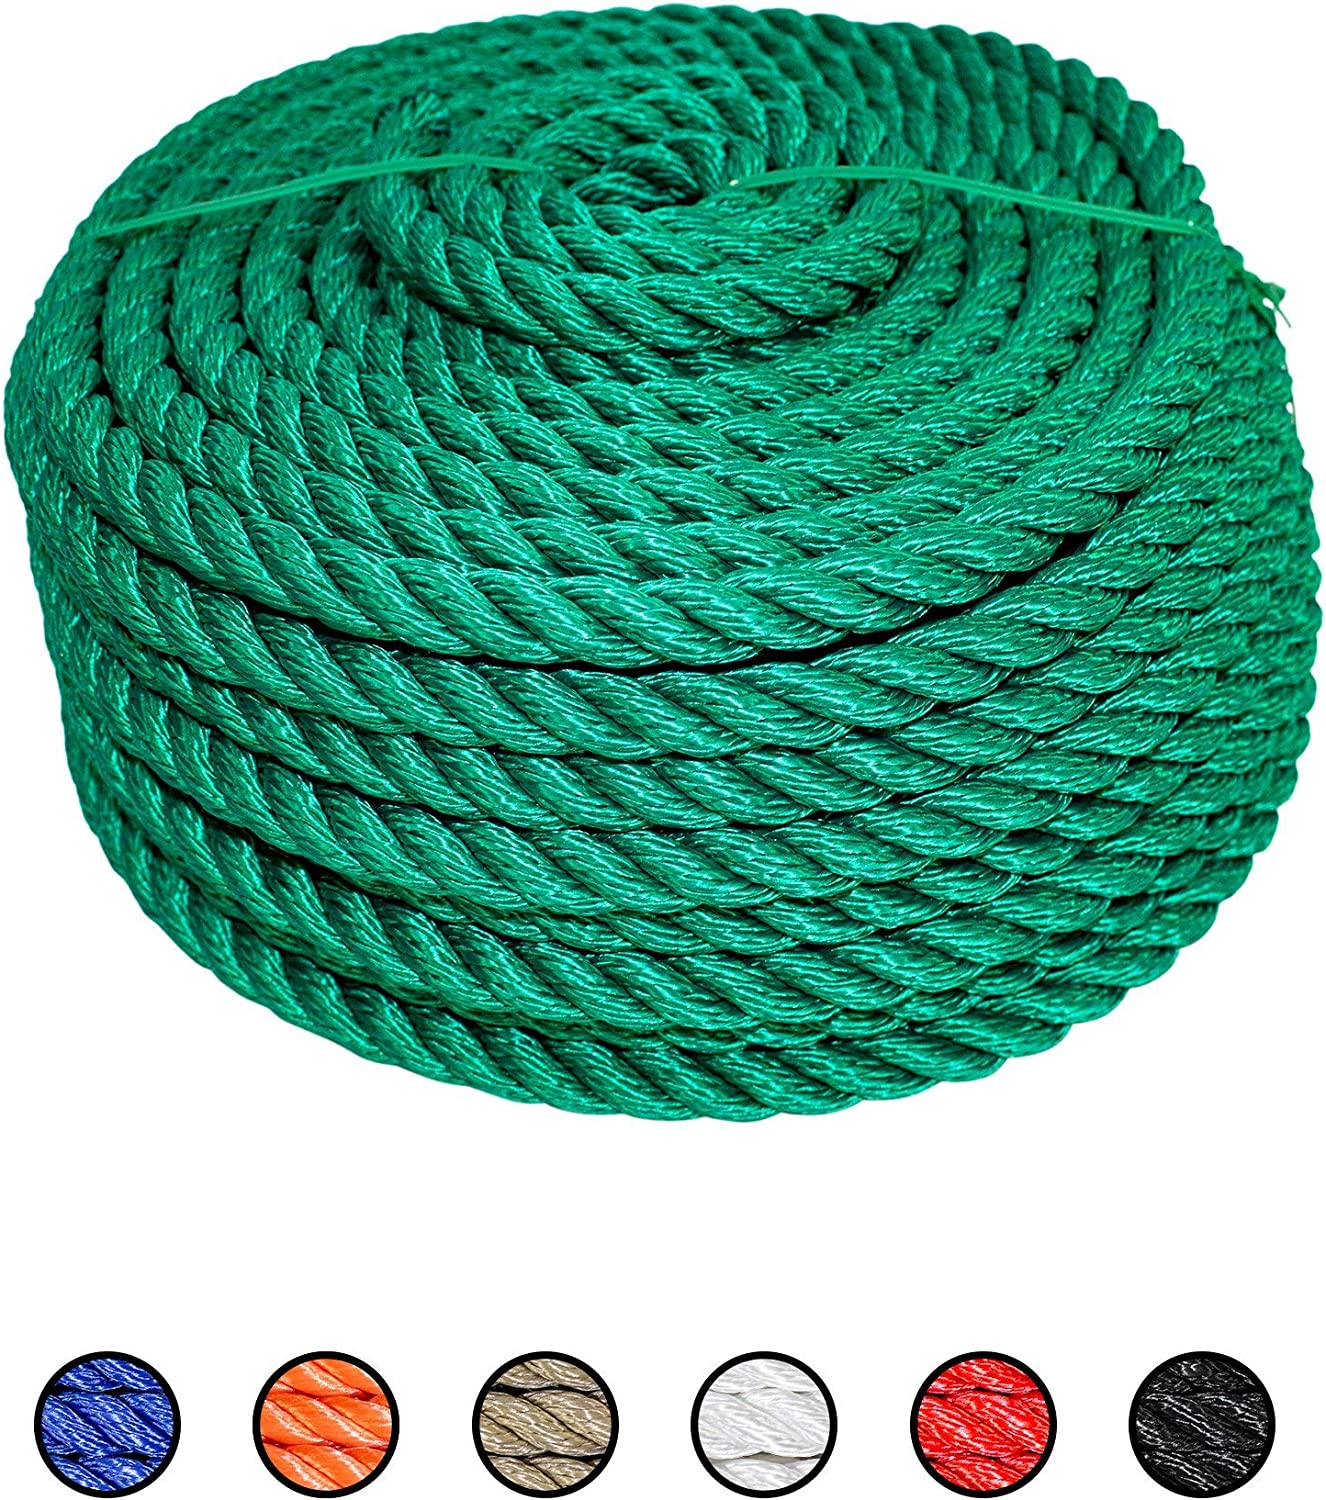 Construction Site Uses SGT KNOTS Twisted MFP Lightweight and Affordable Multifiliment Rope for Decoration Projects 1//4 x 600ft, Tan